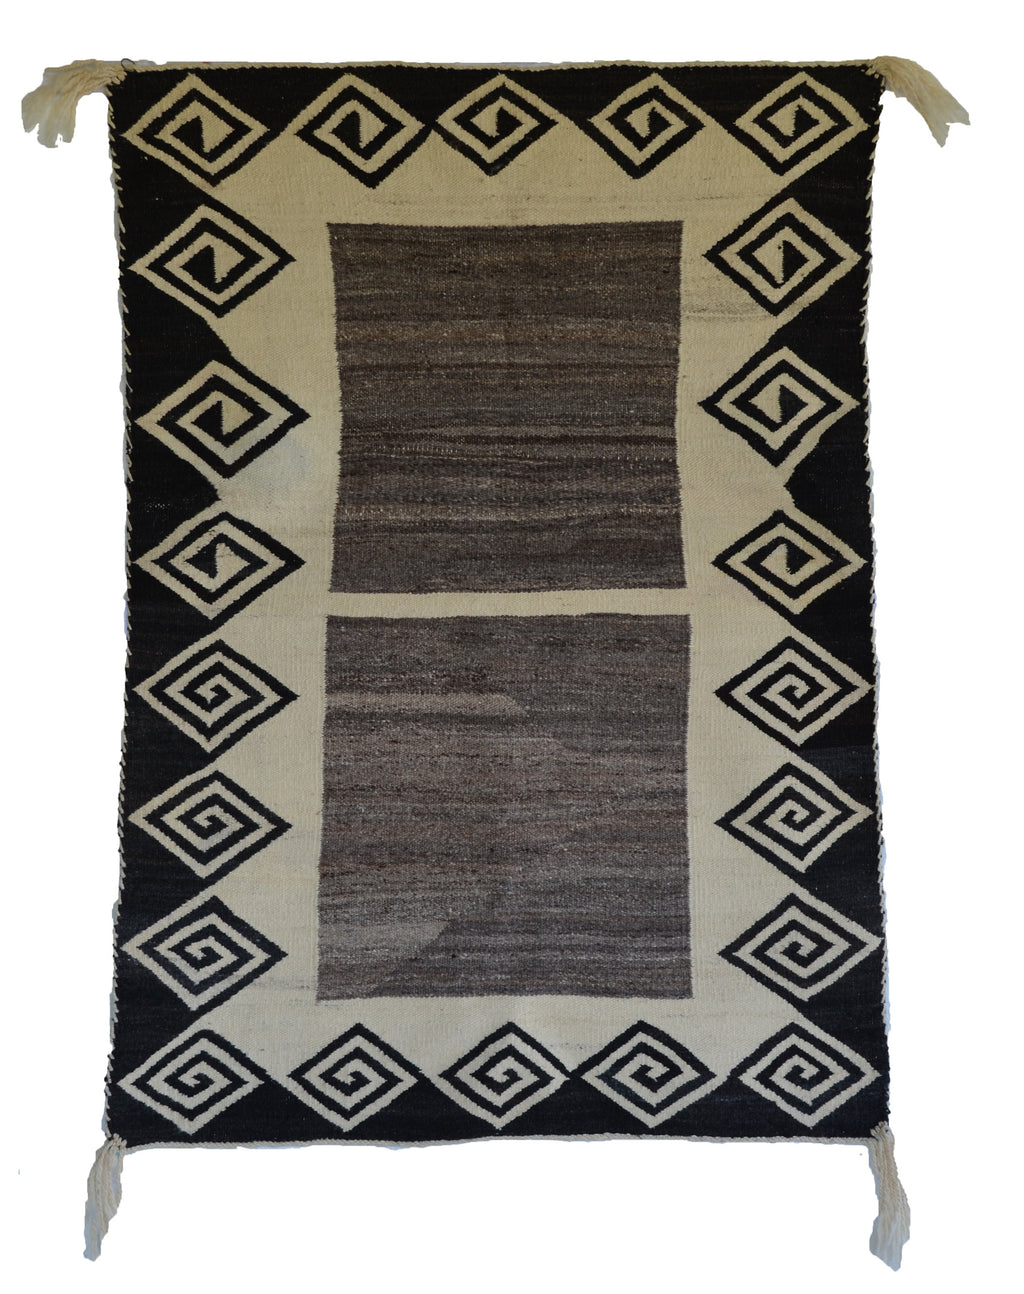 Double Saddle Blanket : Historic Navajo Weaving : JKC-1 - Getzwiller's Nizhoni Ranch Gallery